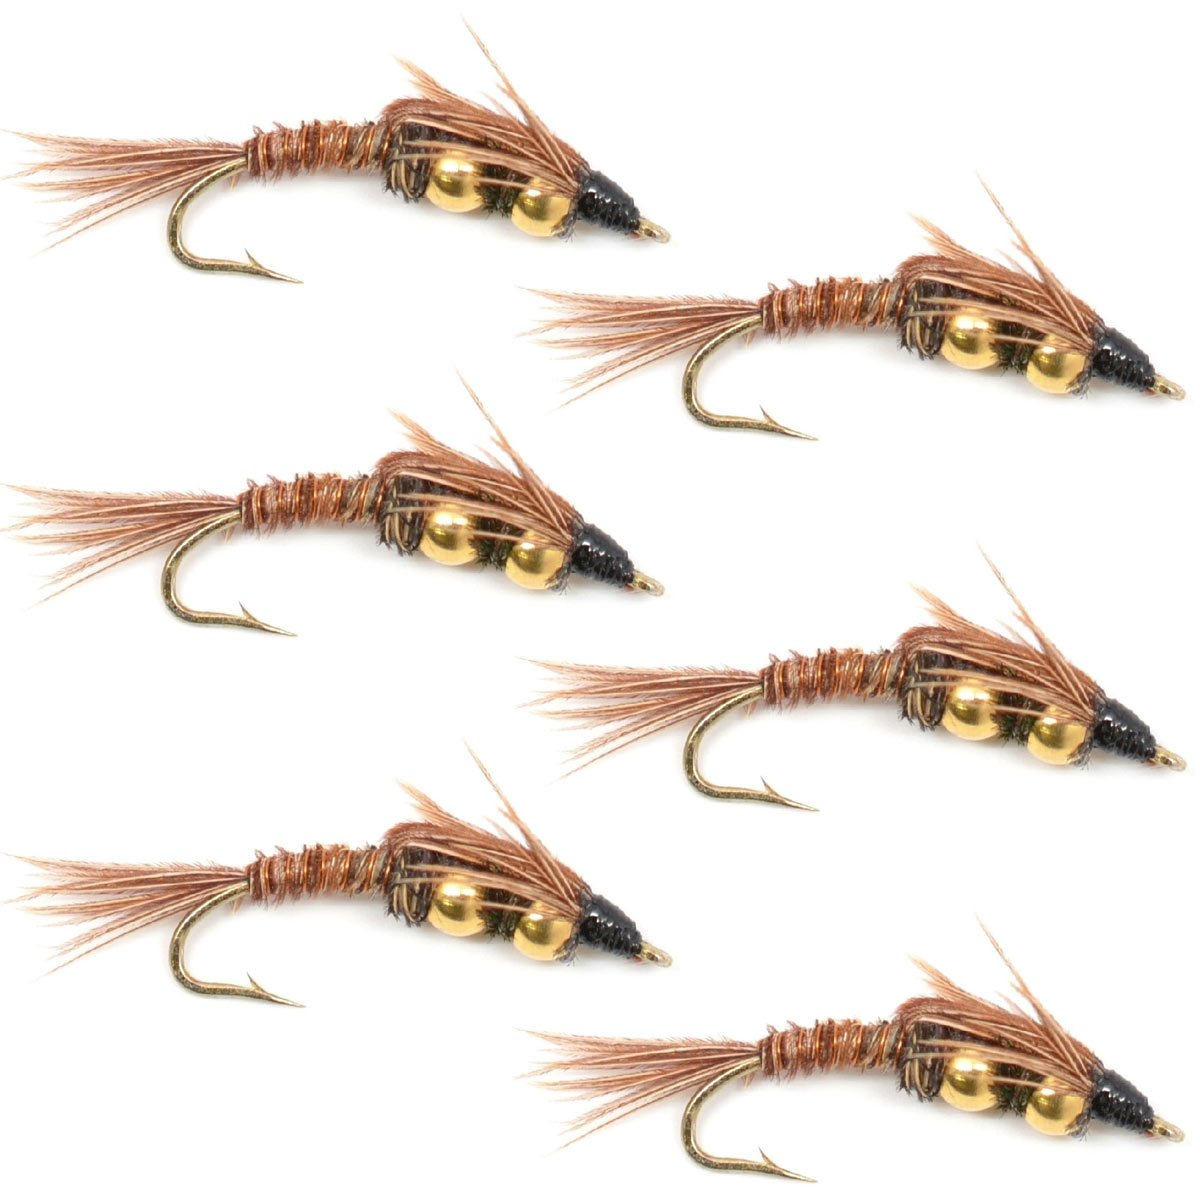 Double Bead Pheasant Tail Nymph Fly Fishing Flies - Trout and Bass Wet Fly Pattern - 6 Flies Hook Size 10 by The Fly Fishing Place